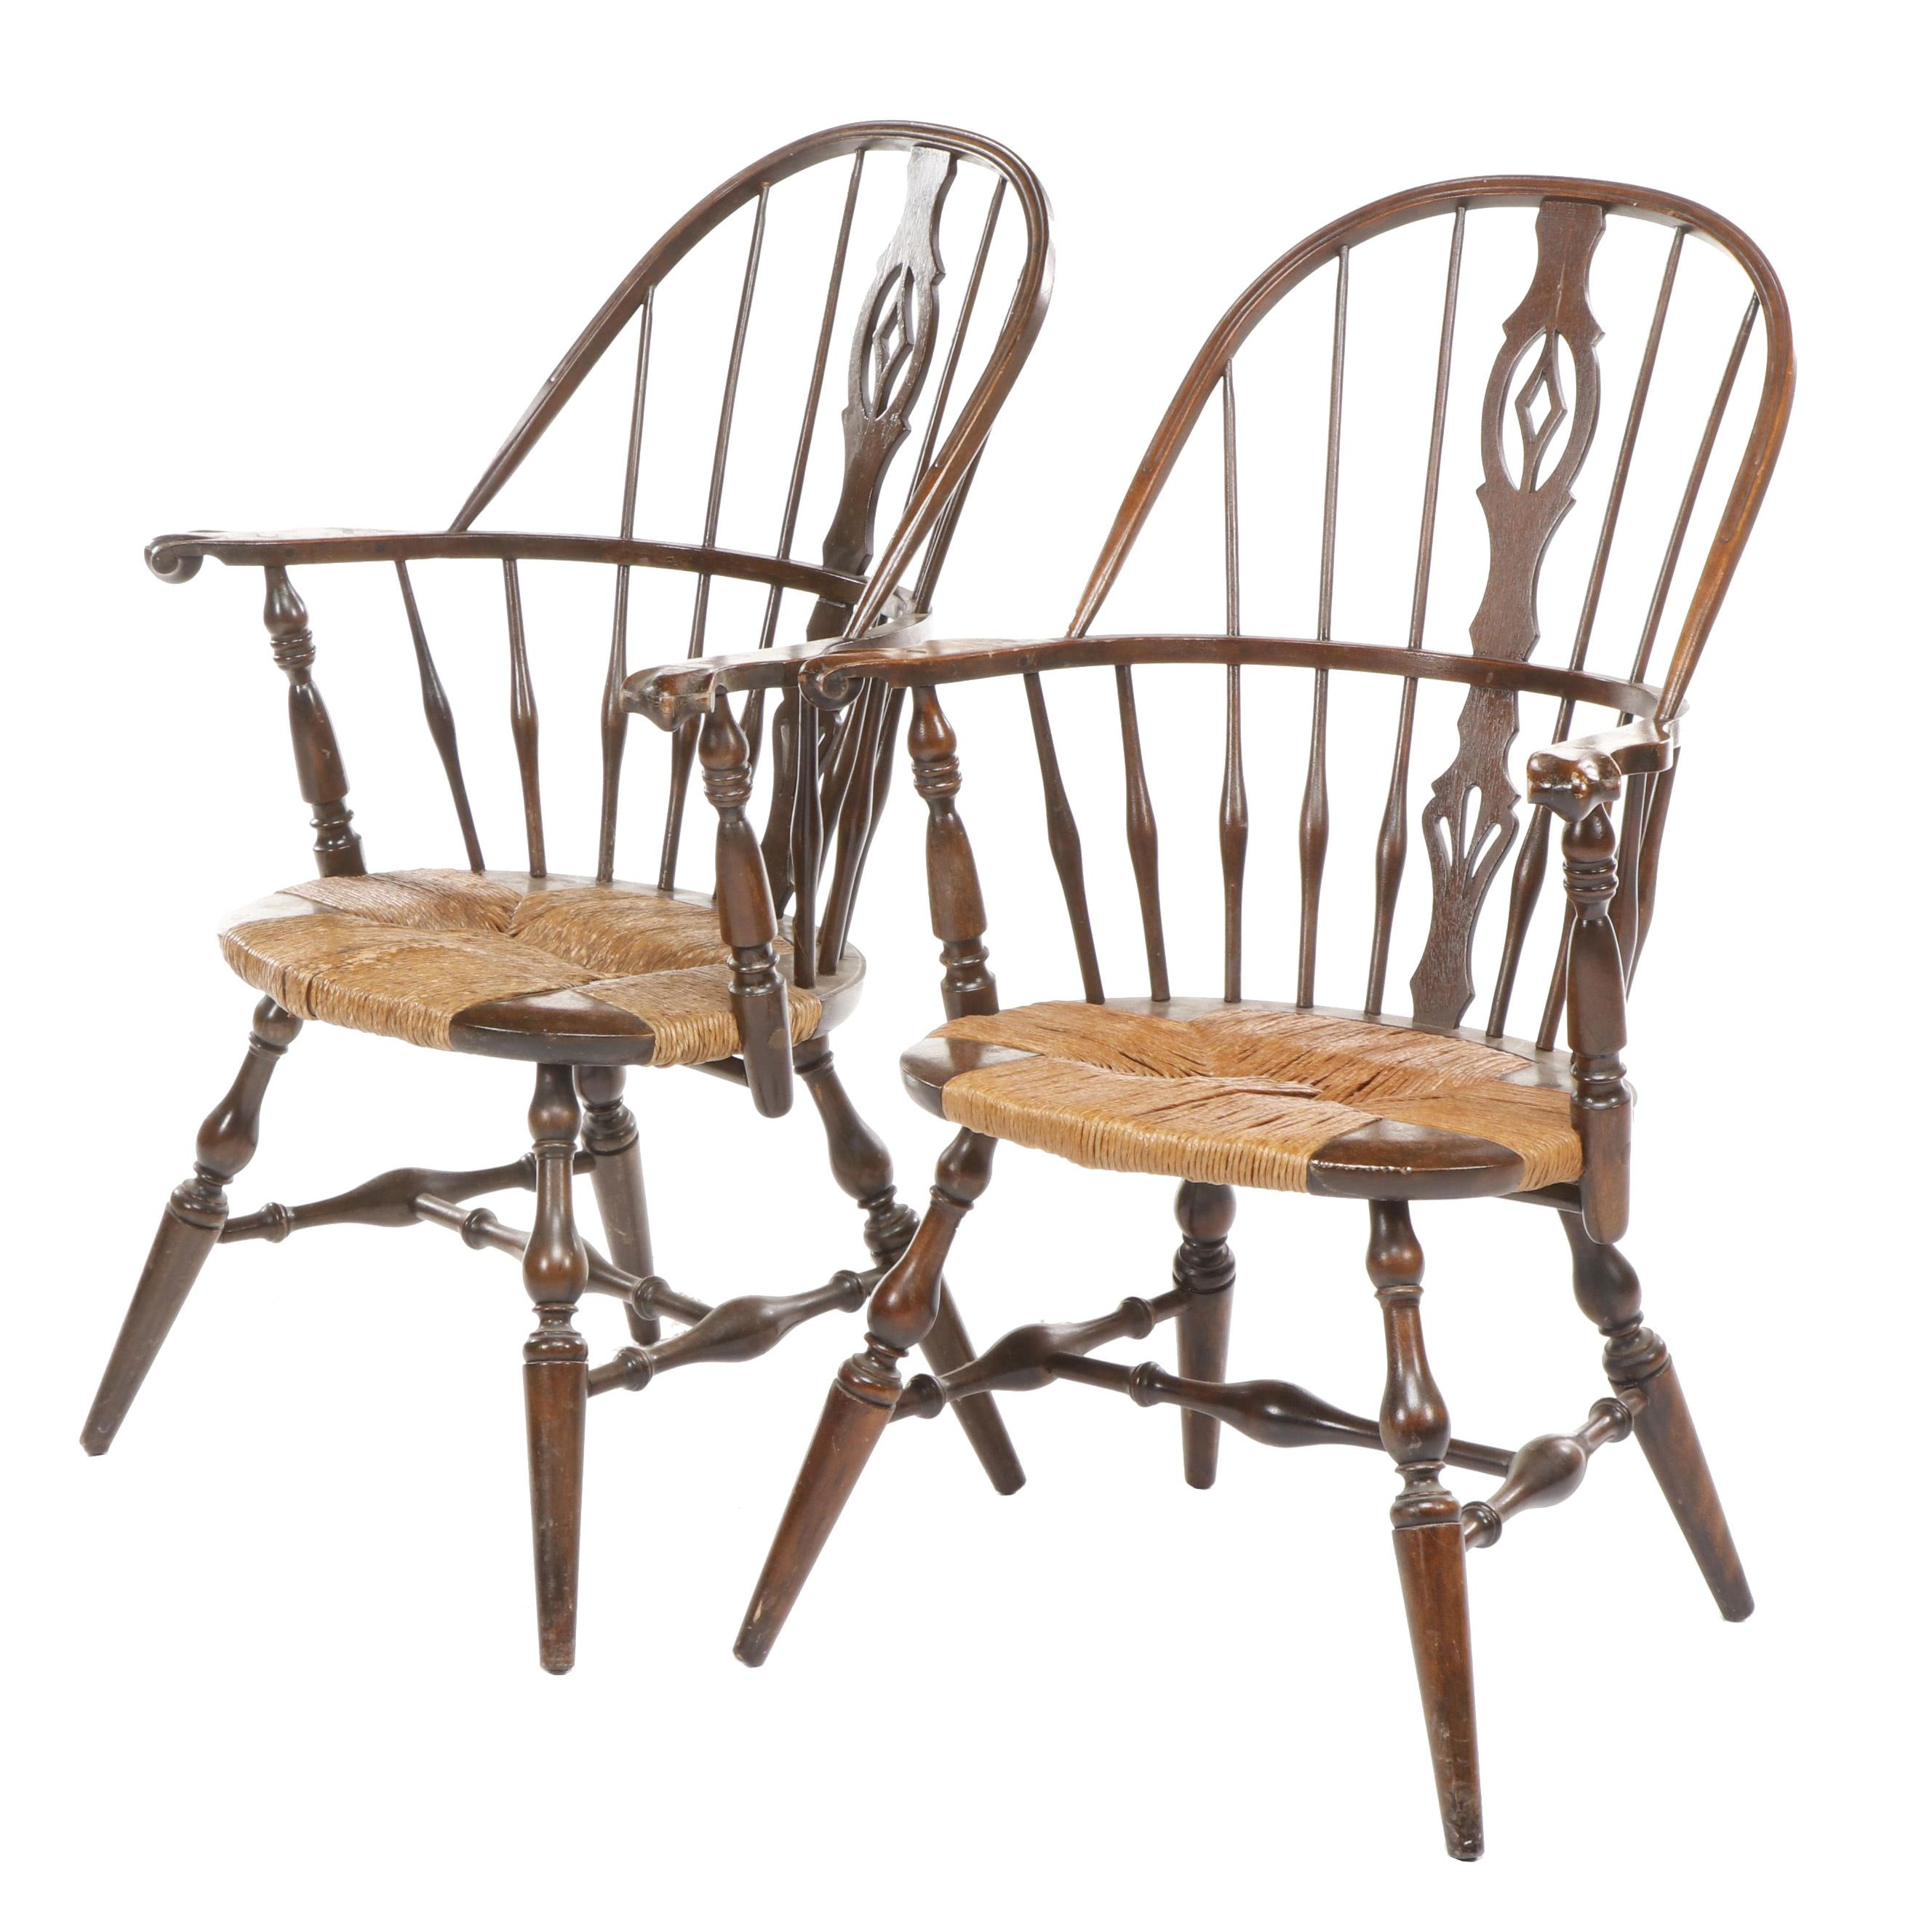 Pair of Colonial Windsor Style Wooden Armchairs with Rush Seat